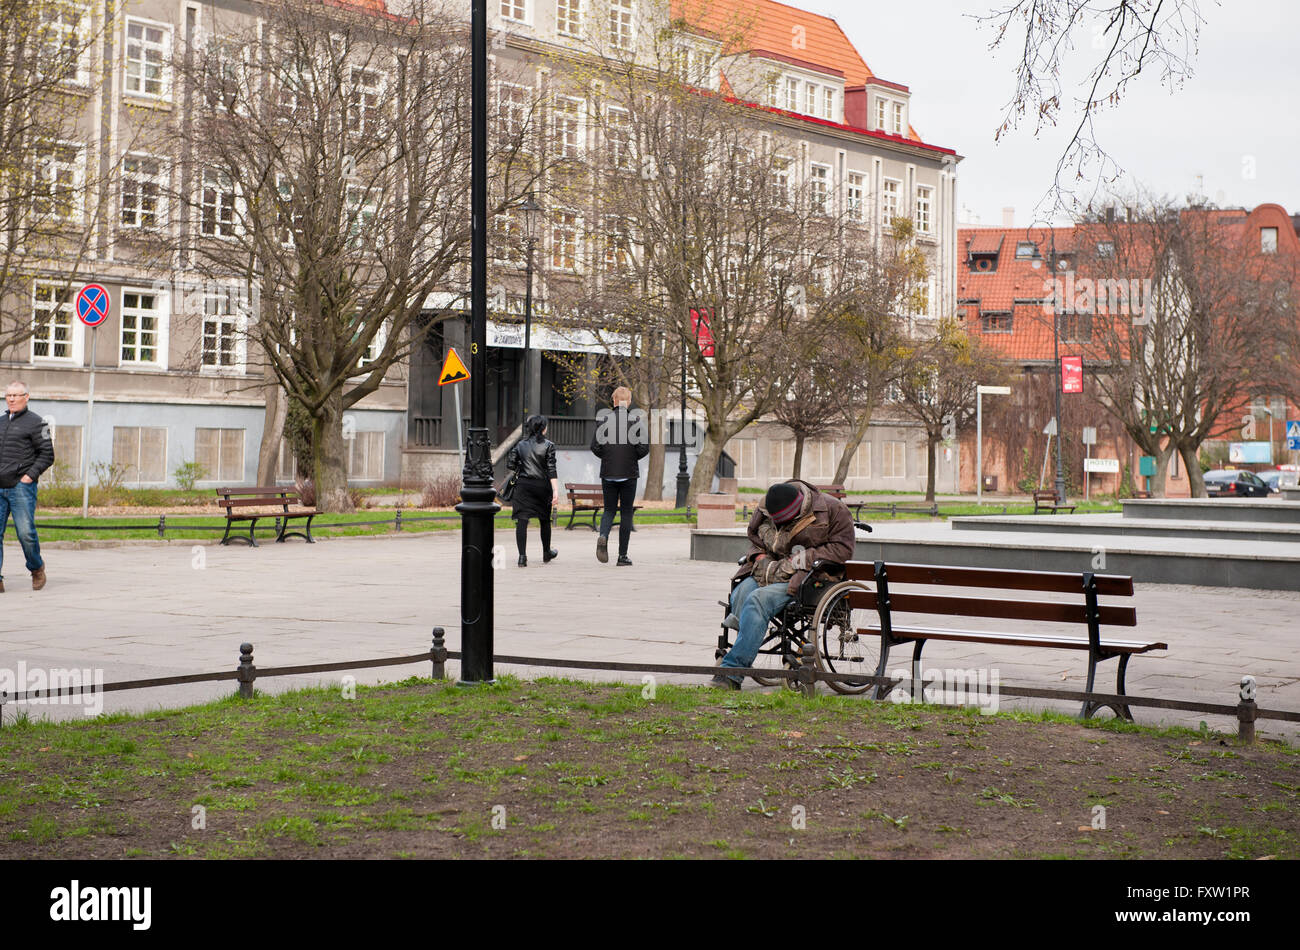 Homeless hunched invalid man on the wheelchair, sleeping outside in the park, cold spring day in Gdansk, Pomeranian - Stock Image